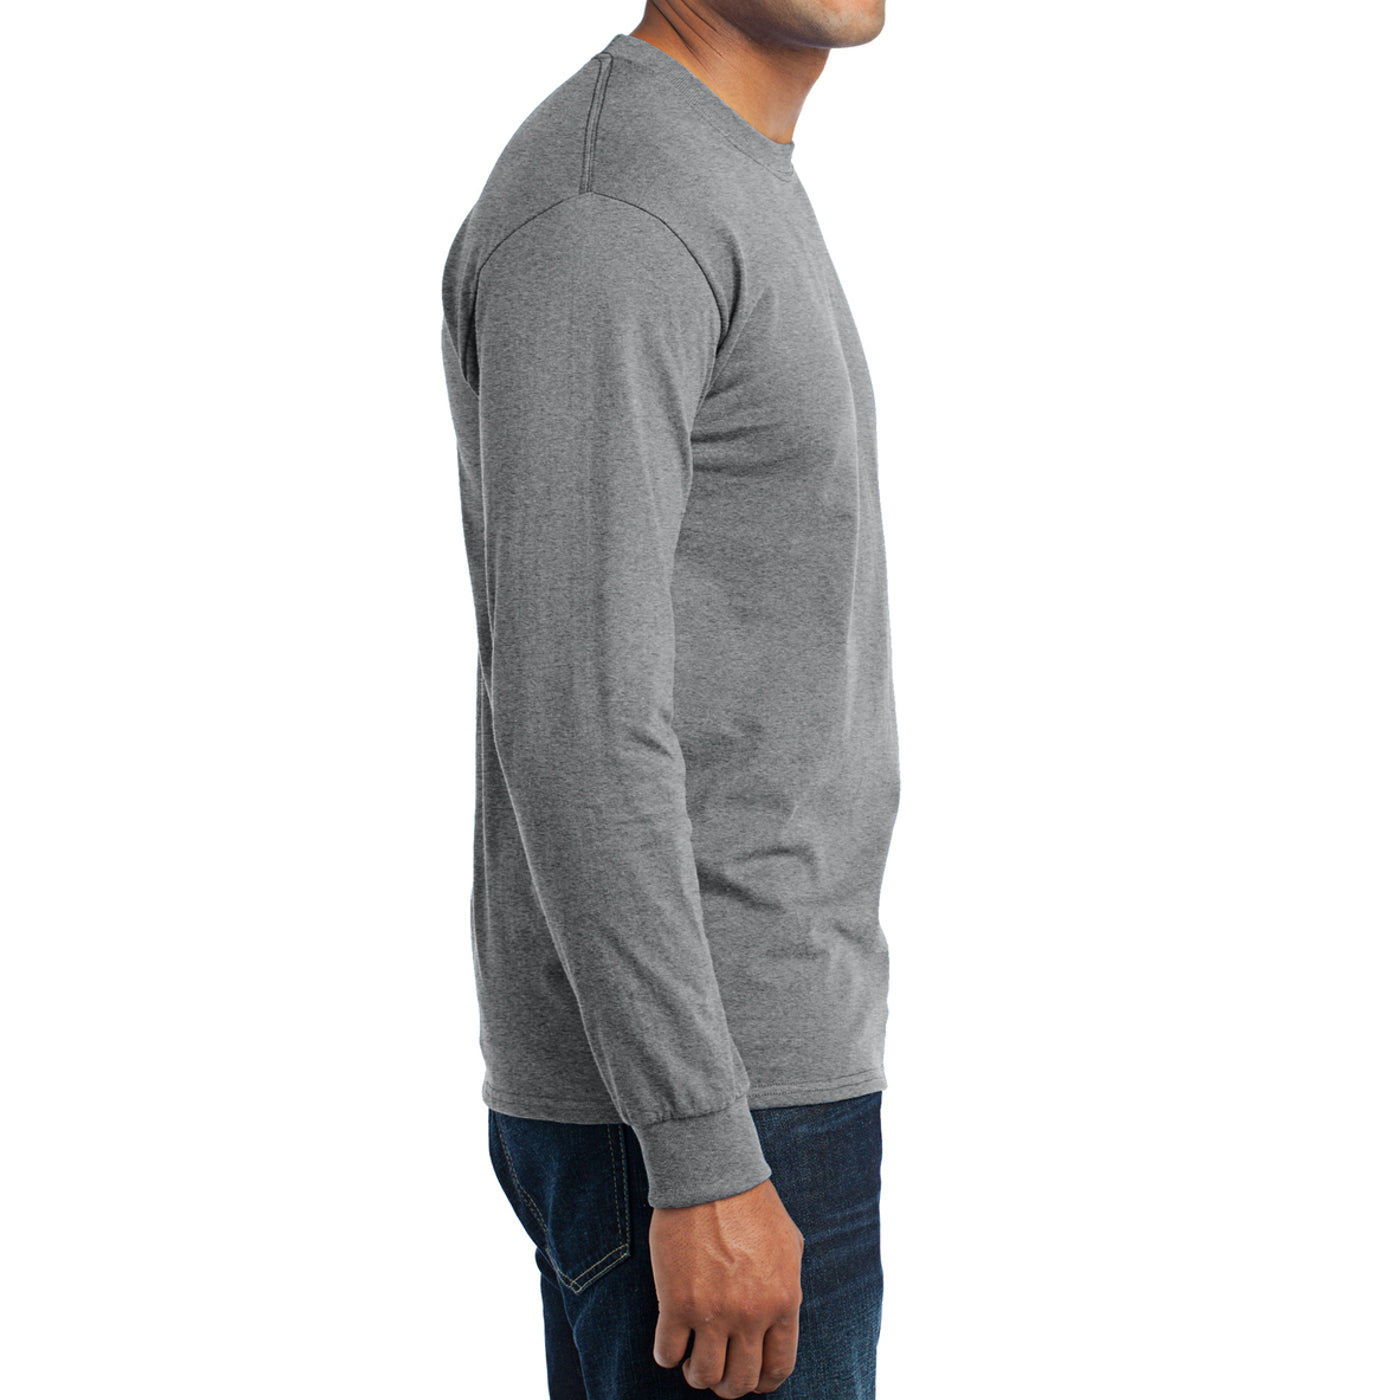 Men's Long Sleeve Core Blend Tee - Athletic Heather – Side